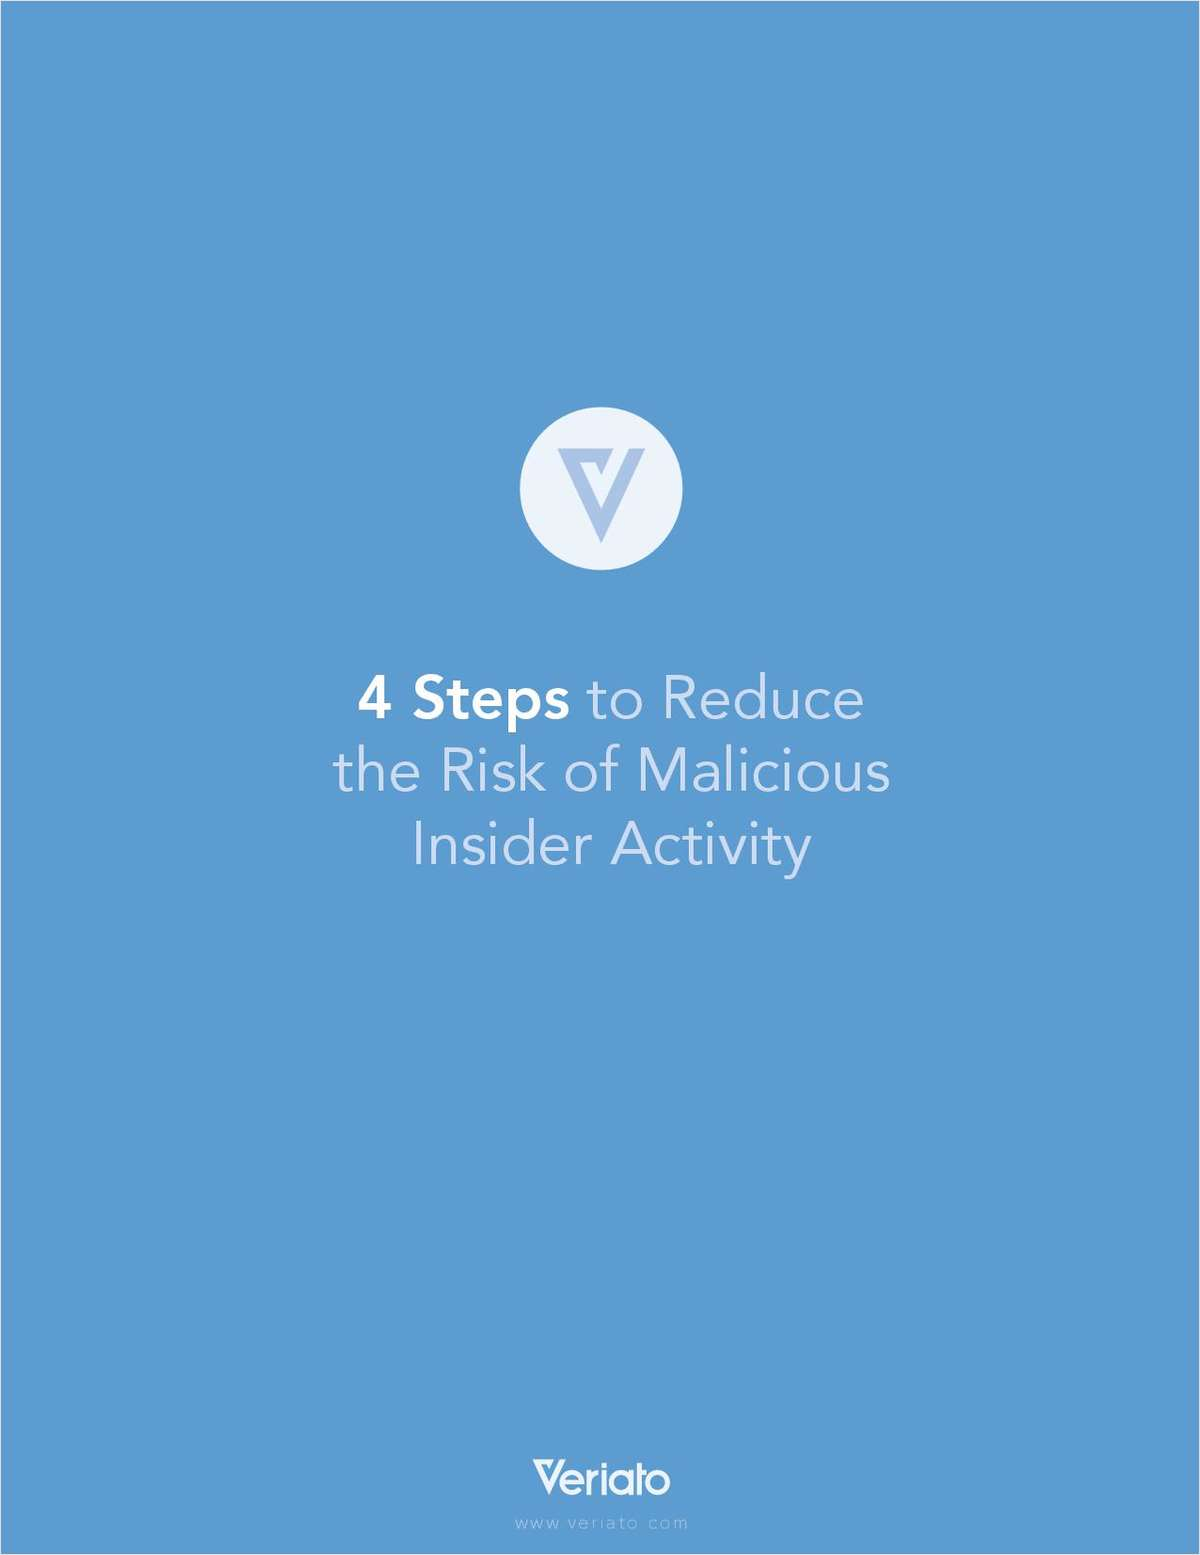 4 Steps to Reduce the Risk of Malicious Insider Activity